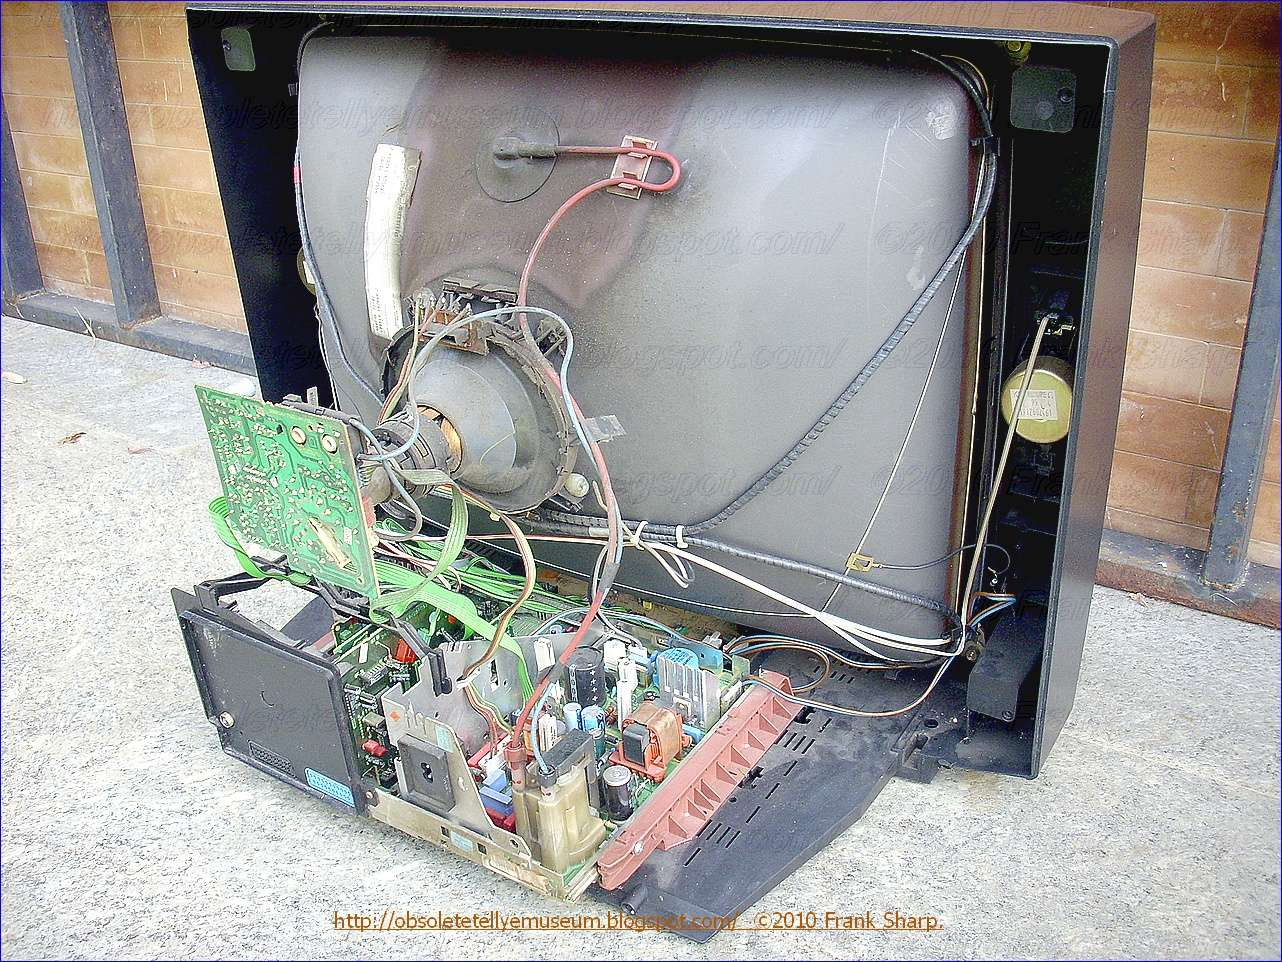 Obsolete Technology Tellye Grundig Xs70 1 Chassis Cuc6360 29701 Which Includes The Switching Transistor So You Can Happily Use It Since This Is A Normal Behavior Of Conventional Television Receiver Circuit Desirable That Monitor Voltage